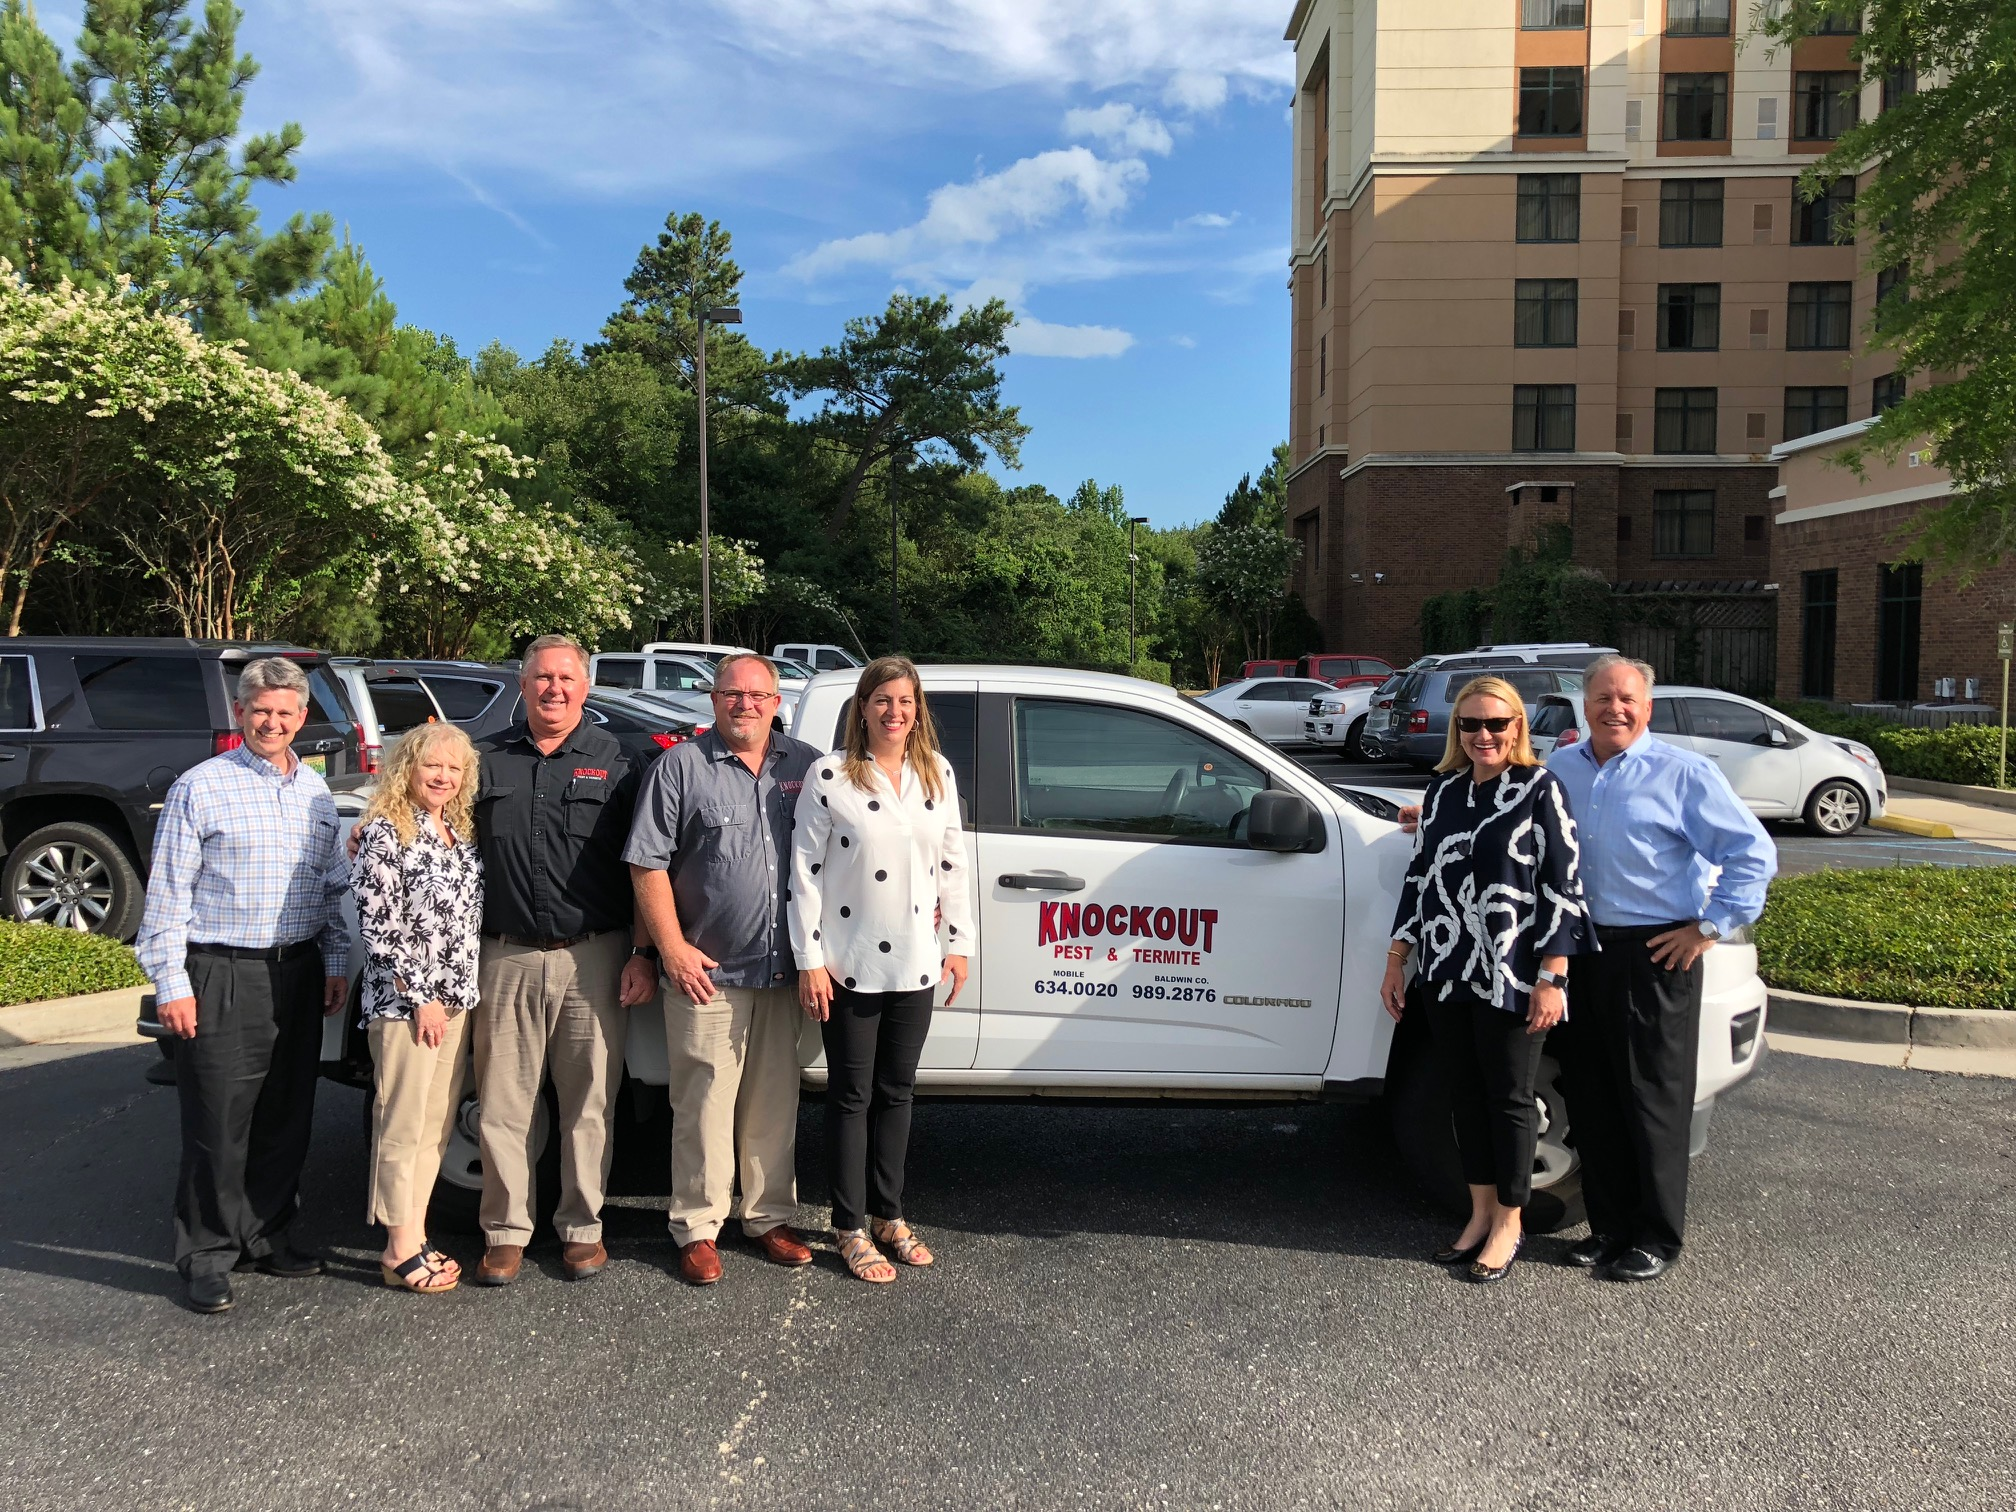 Arrow Exterminators Announces the Strategic Acquisition of Knockout Pest & Termite LLC in Baldwin and Mobile Counties in Alabama